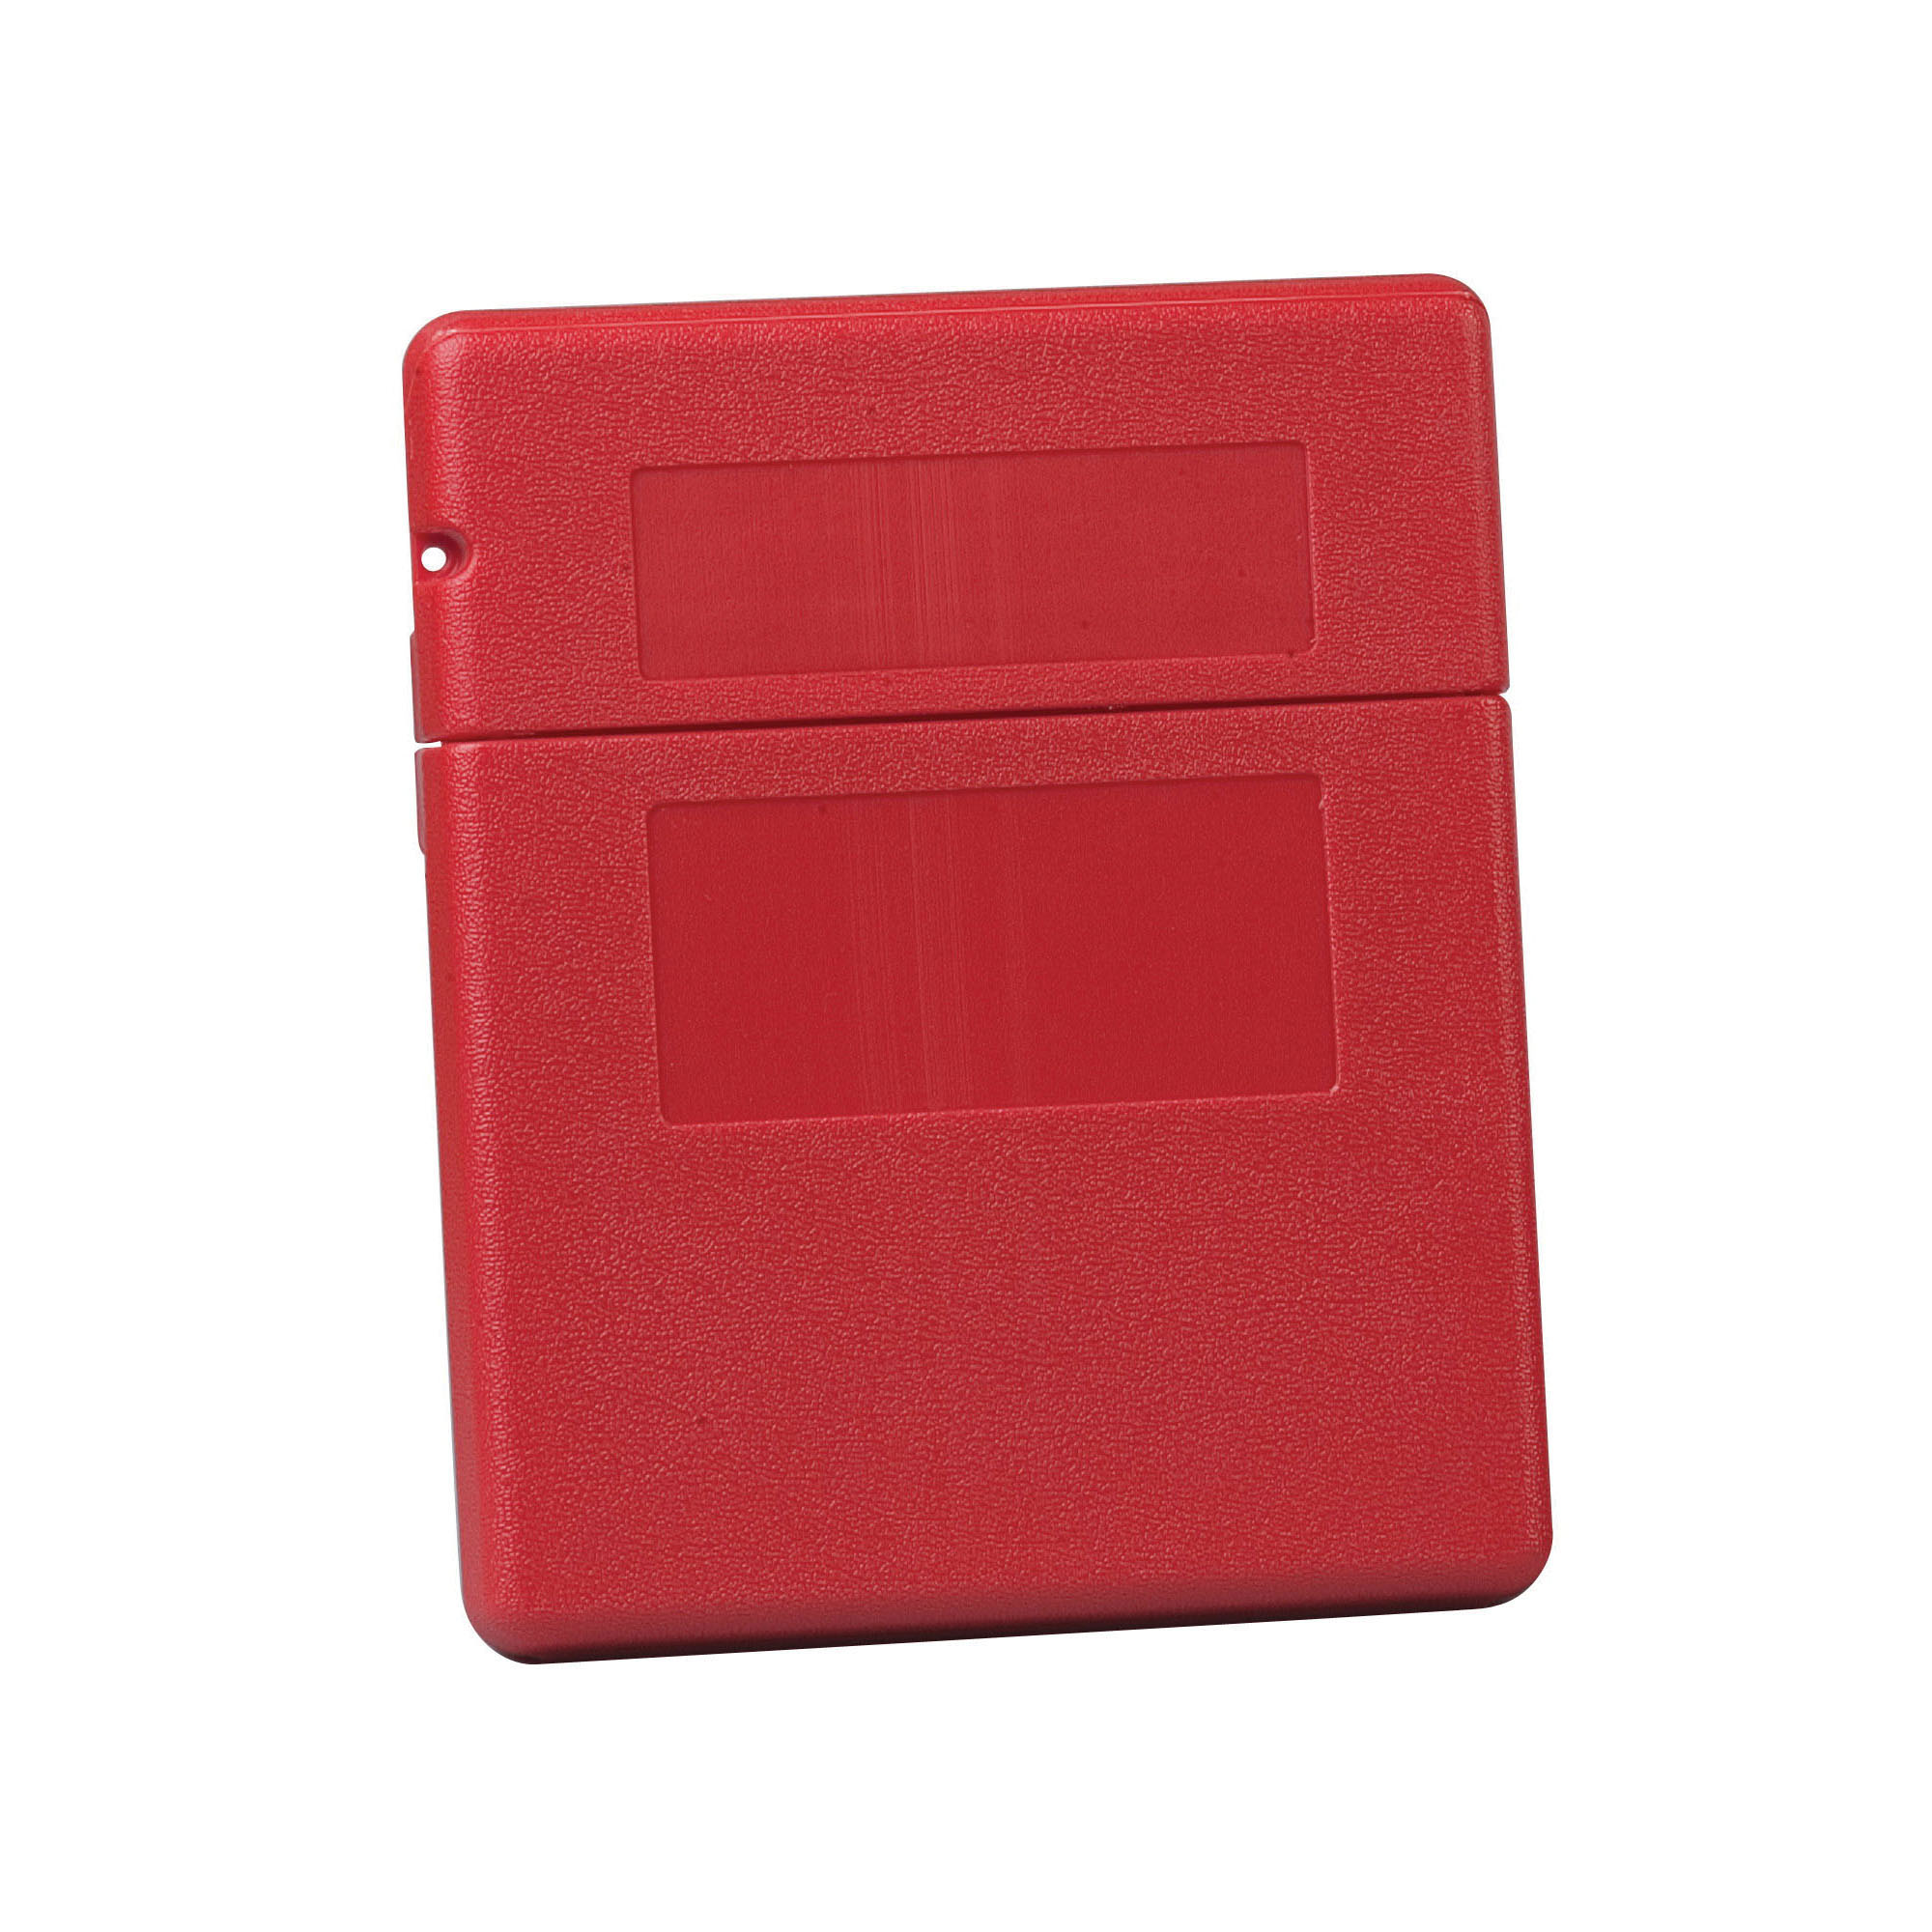 Justrite® 23303 Medium Document Storage Box, 2-1/4 in Exterior, 1.6 in Interior D x 11-1/2 in Interior, 12-1/2 in Exterior H, Polyethylene, Red